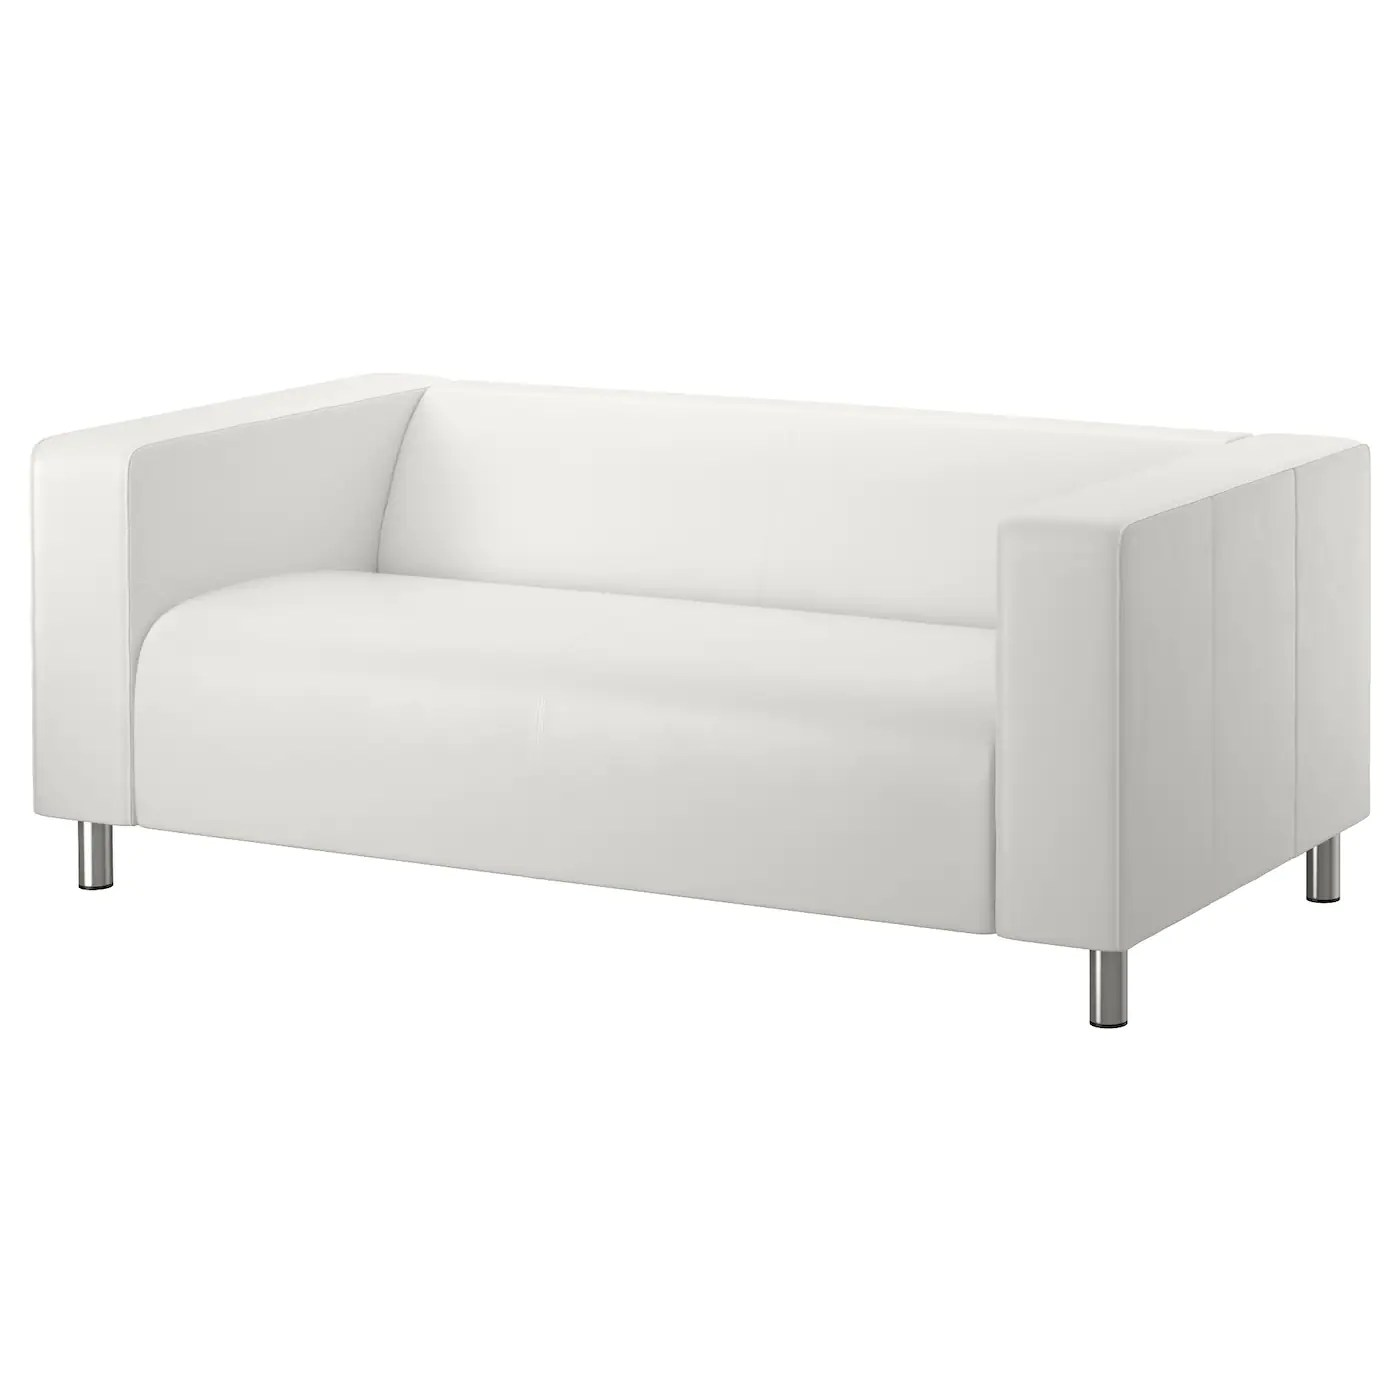 can you clean white leather sofas recliner and chairs klippan two seat sofa kimstad ikea